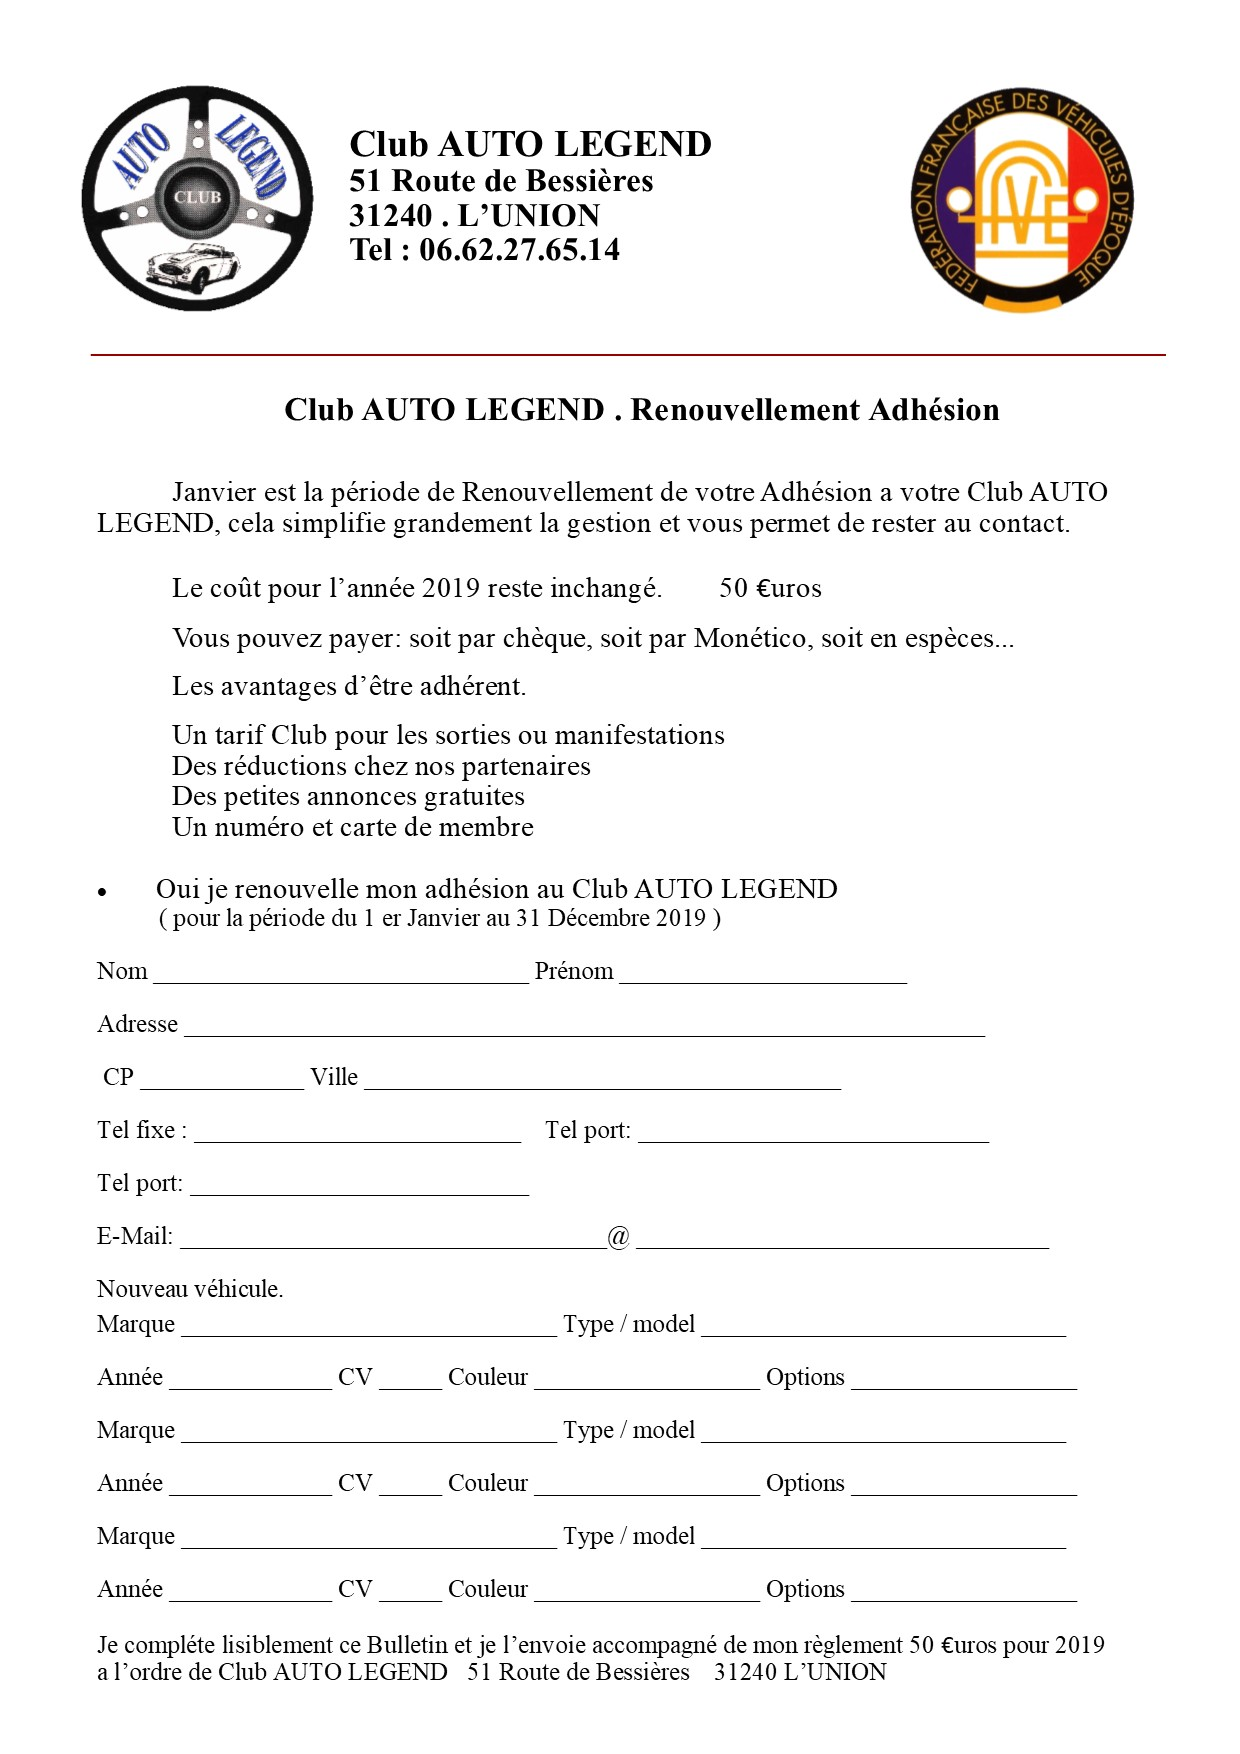 Club renouvellement adhesion 2019